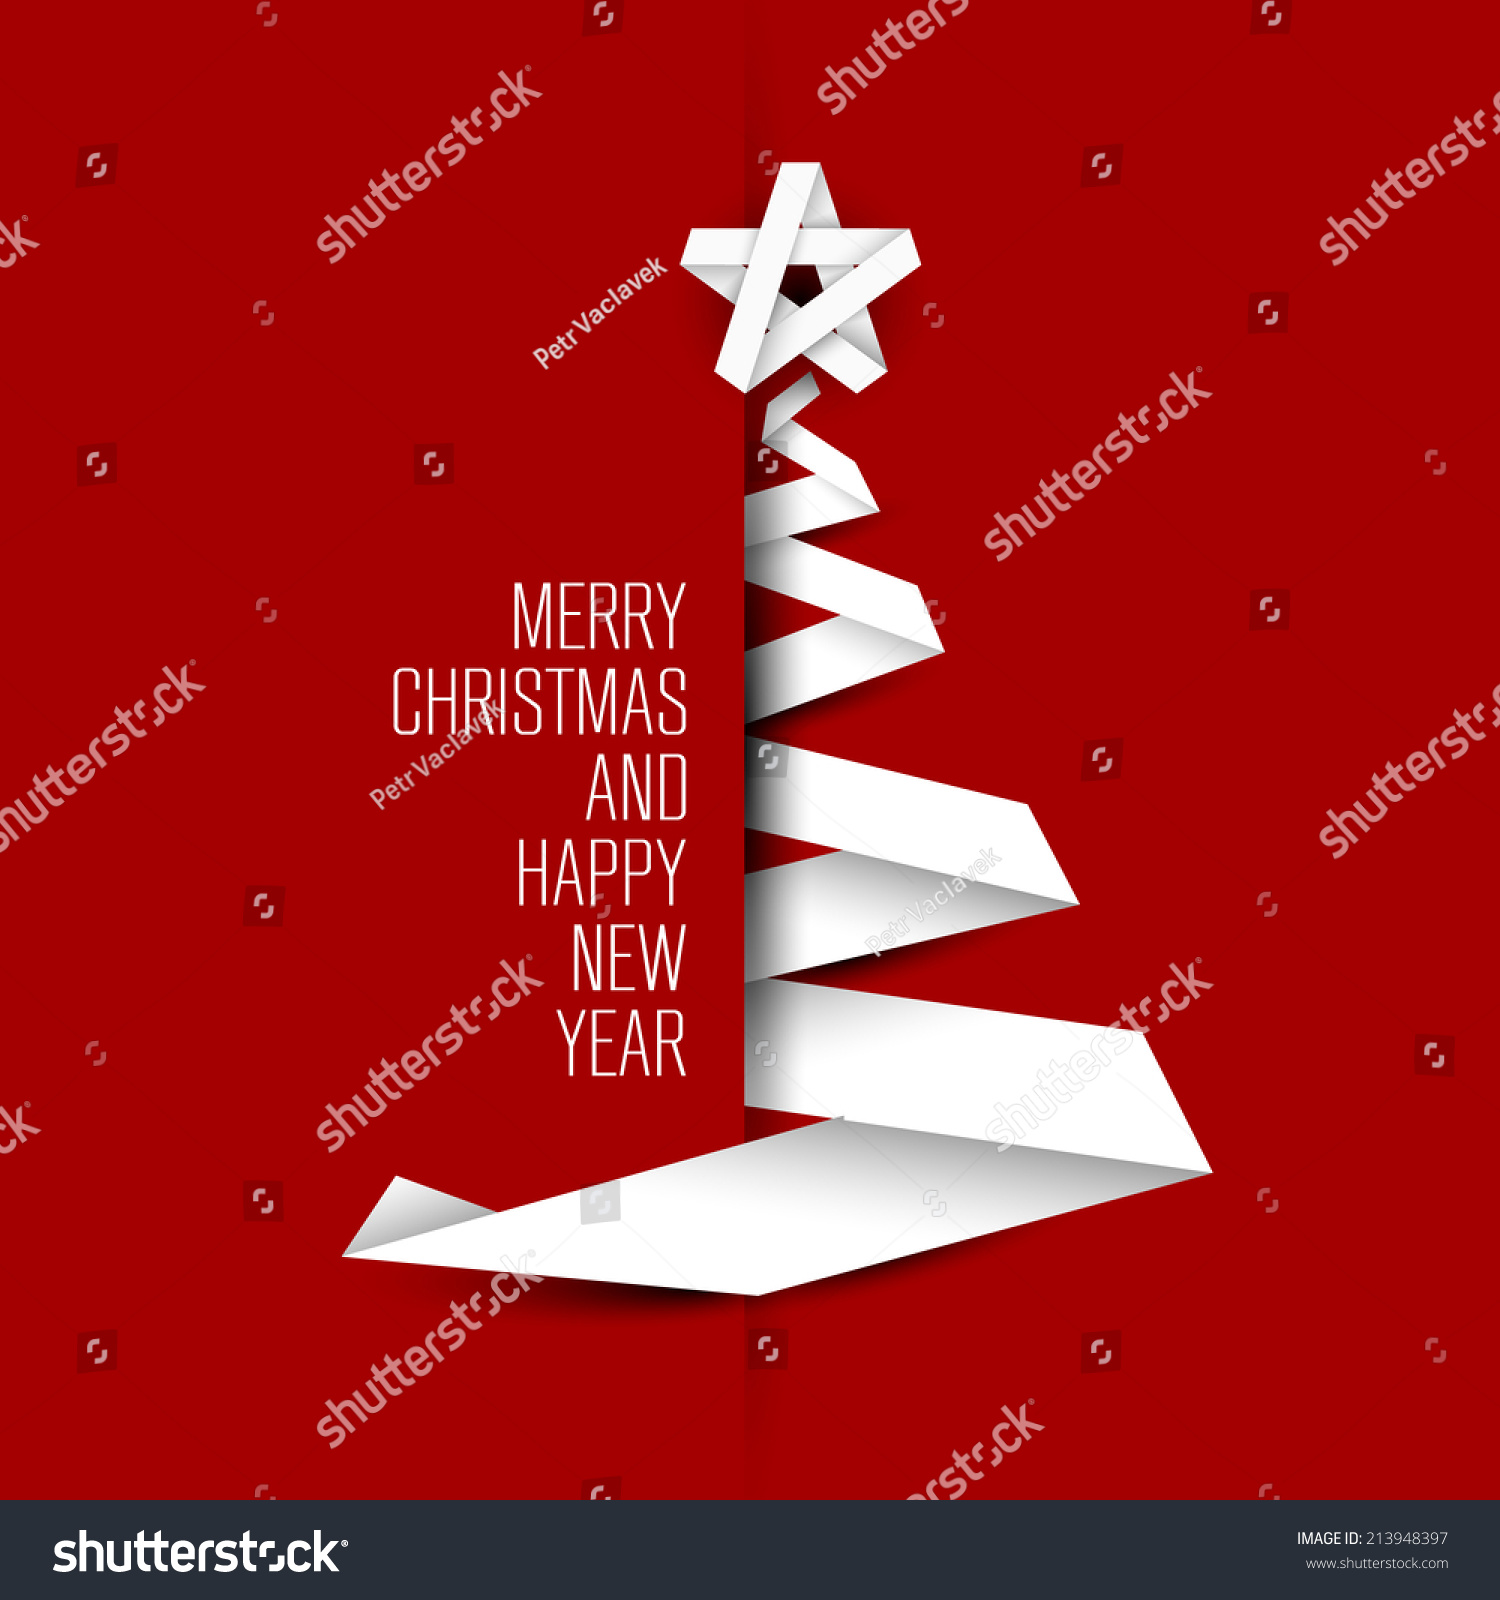 Easy Year To Travel On Christmas: Simple Vector Christmas Tree Made Paper Stock Vector